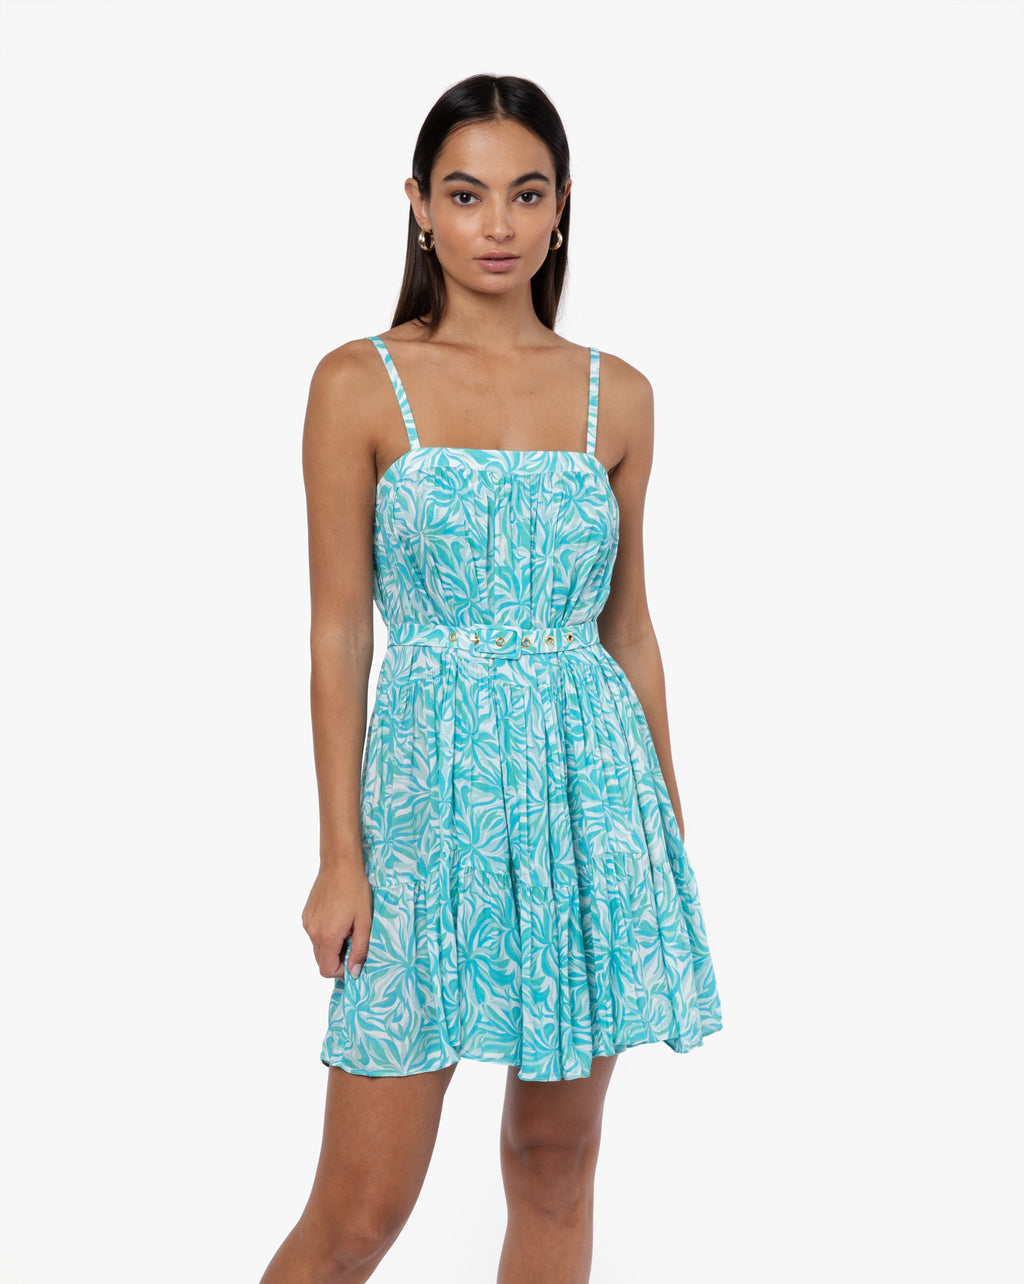 Matilda Dress - Sunflower Aqua